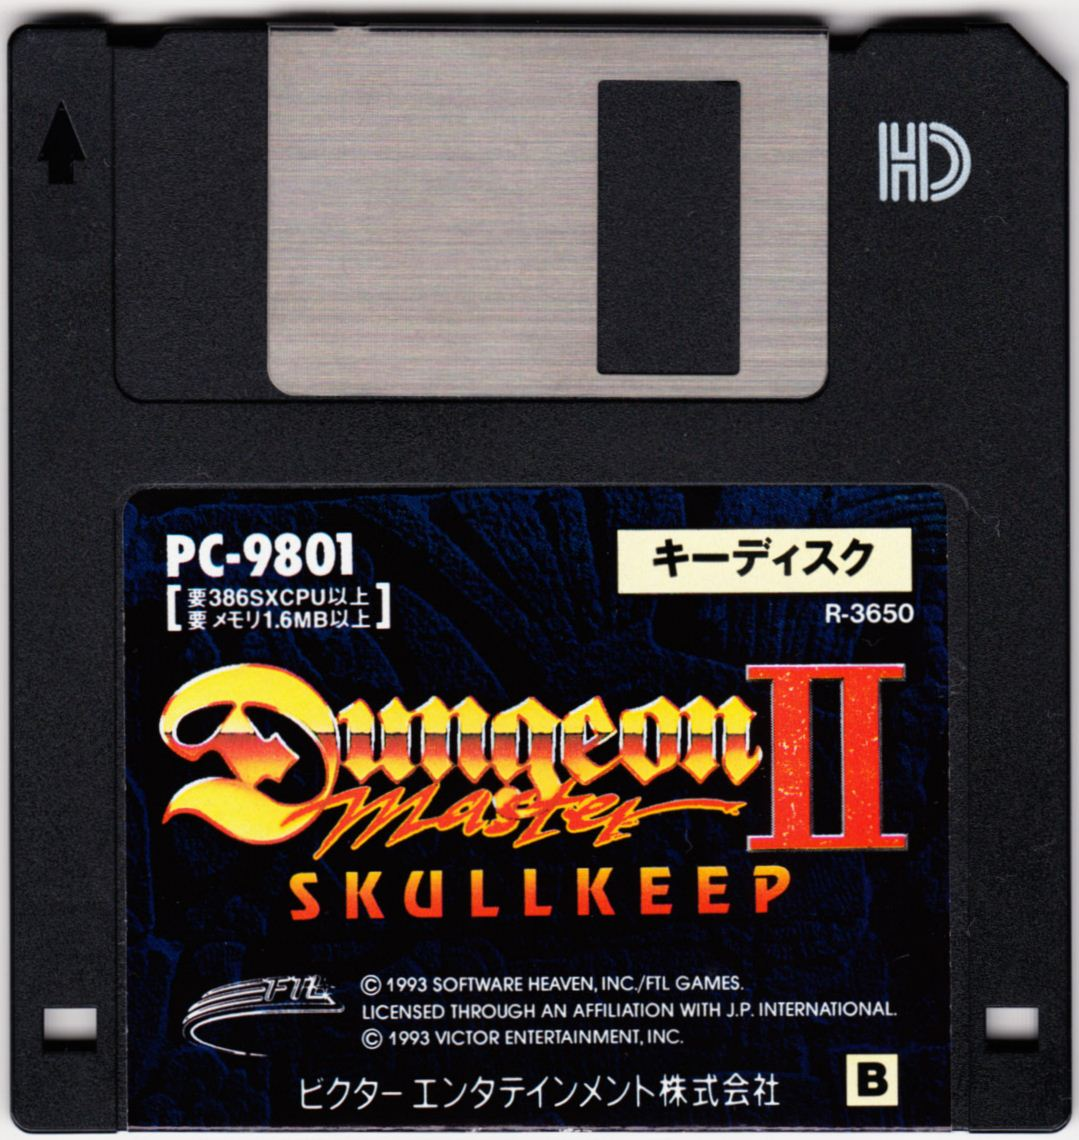 Game - Dungeon Master II - JP - PC-9801 - 3.5-inch - Disk B Key Disk - Front - Scan